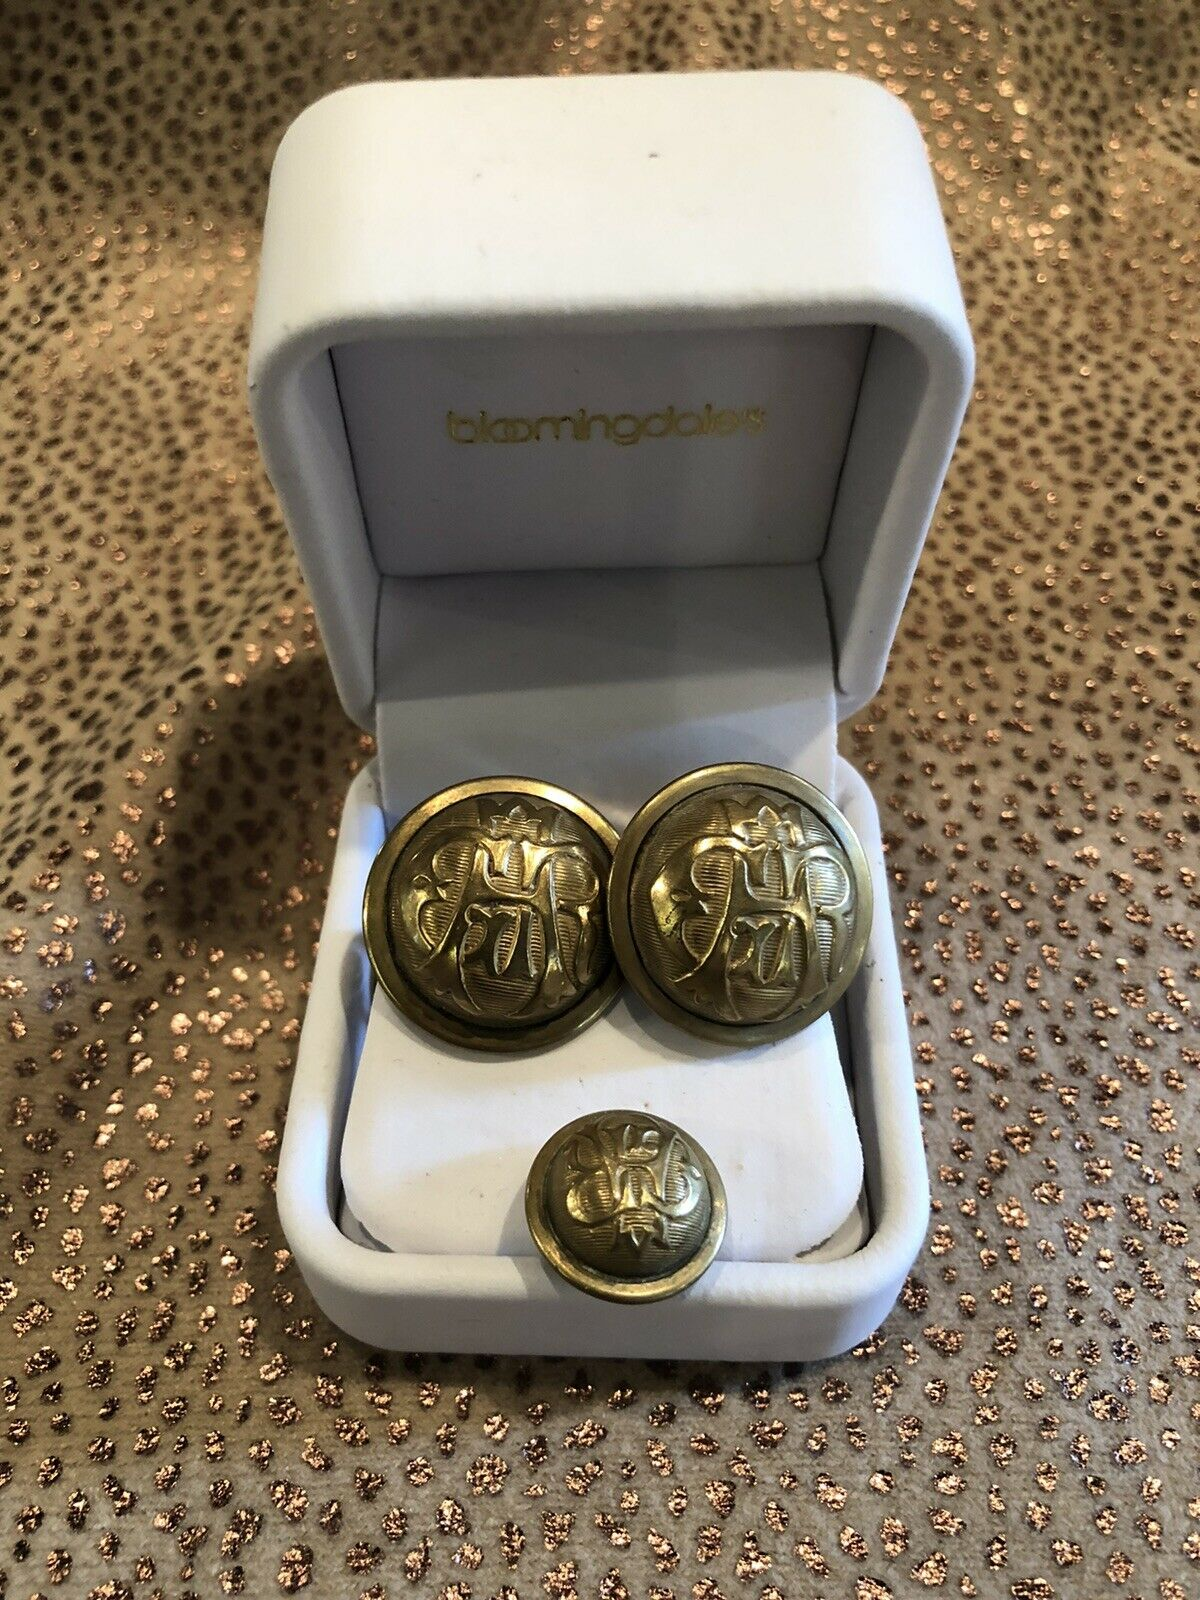 Antique Civil War Grand Army of the Republic Buttons as Cufflinks & Tie Tack